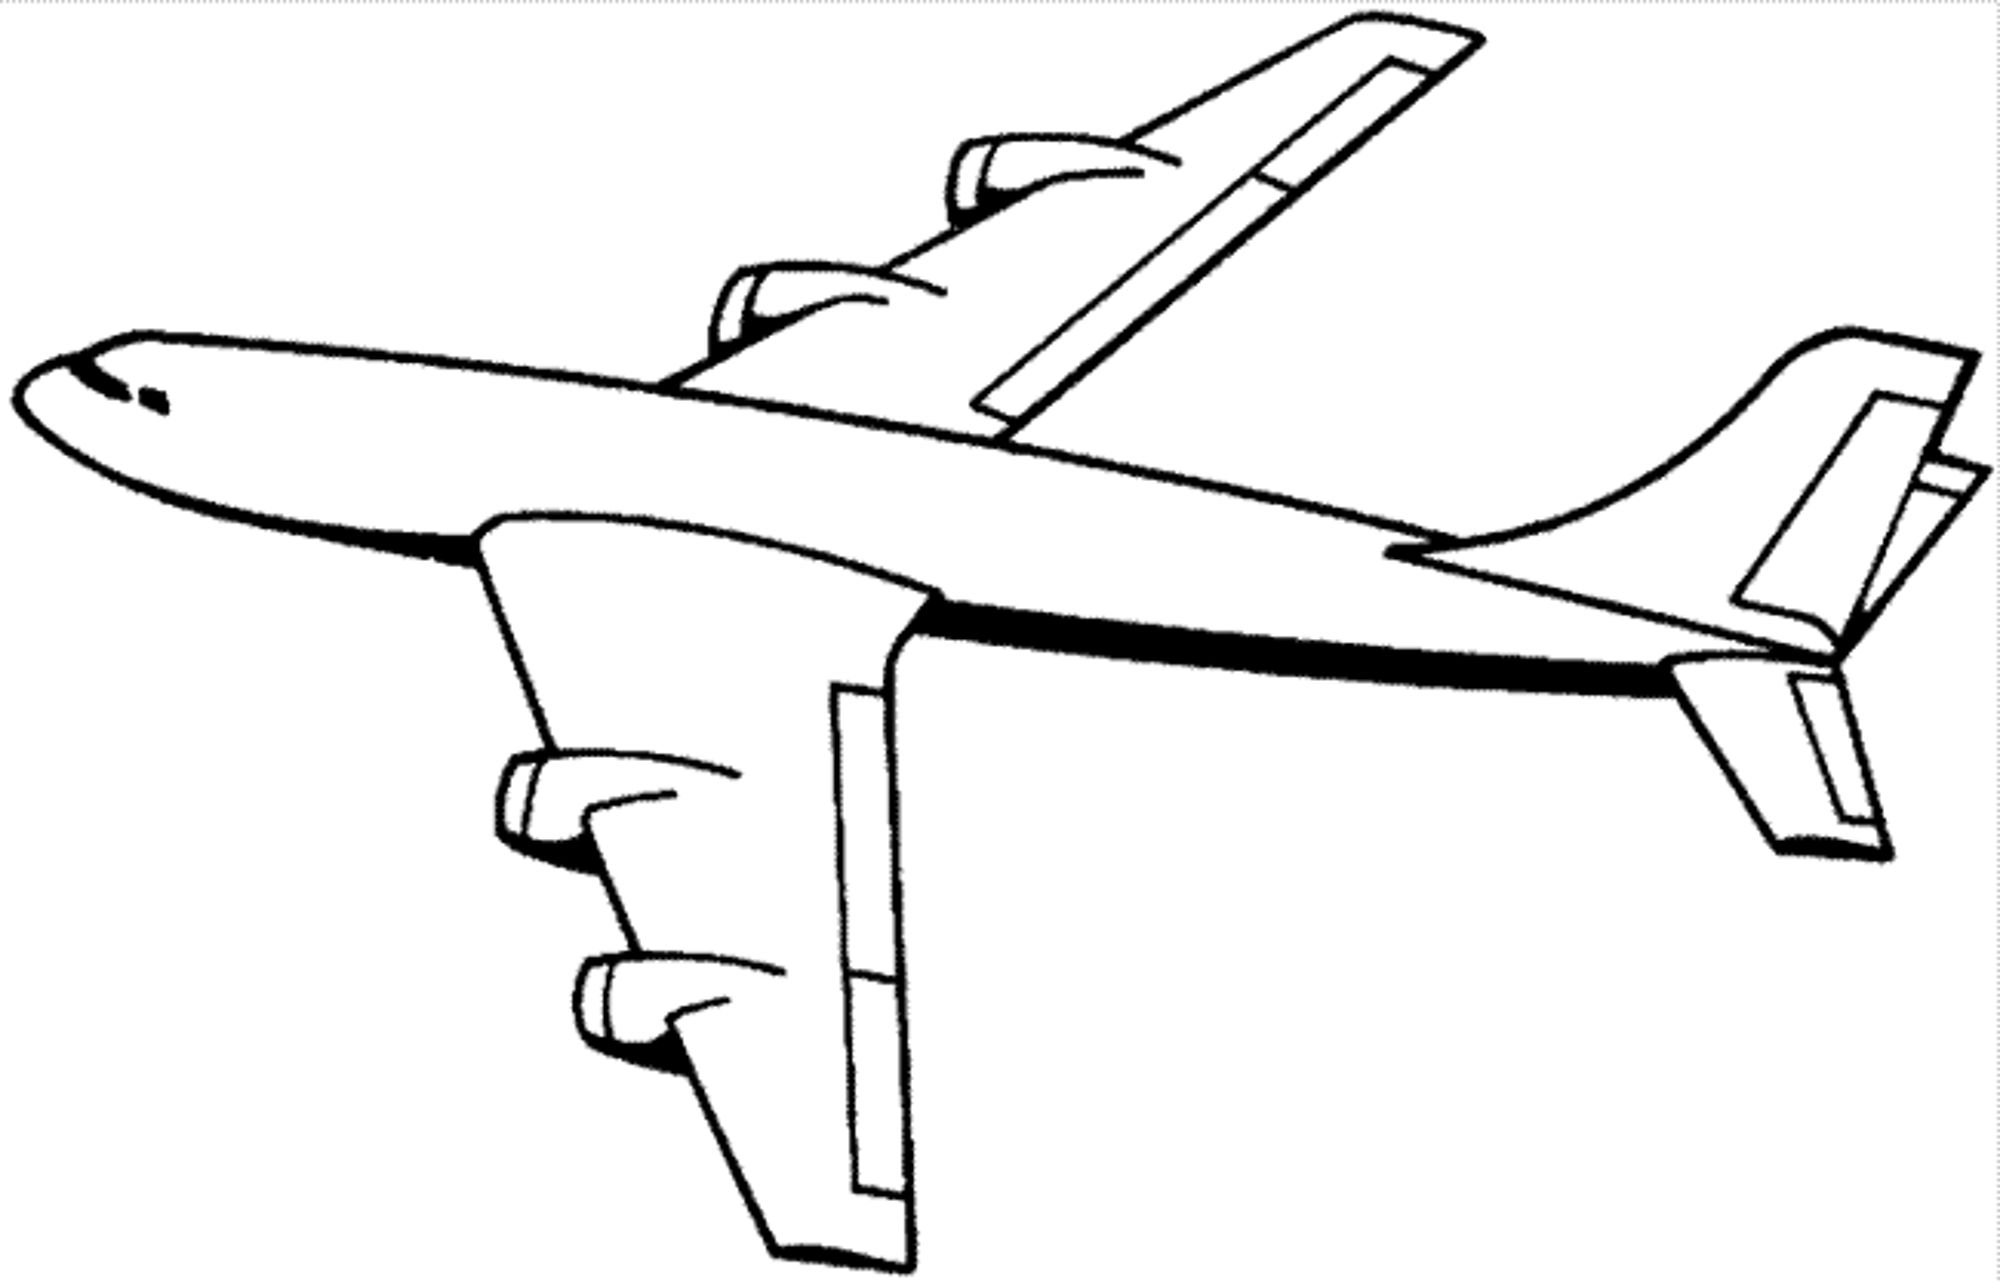 coloring pages airplanes 10 free airplane coloring pages for kids coloring pages airplanes